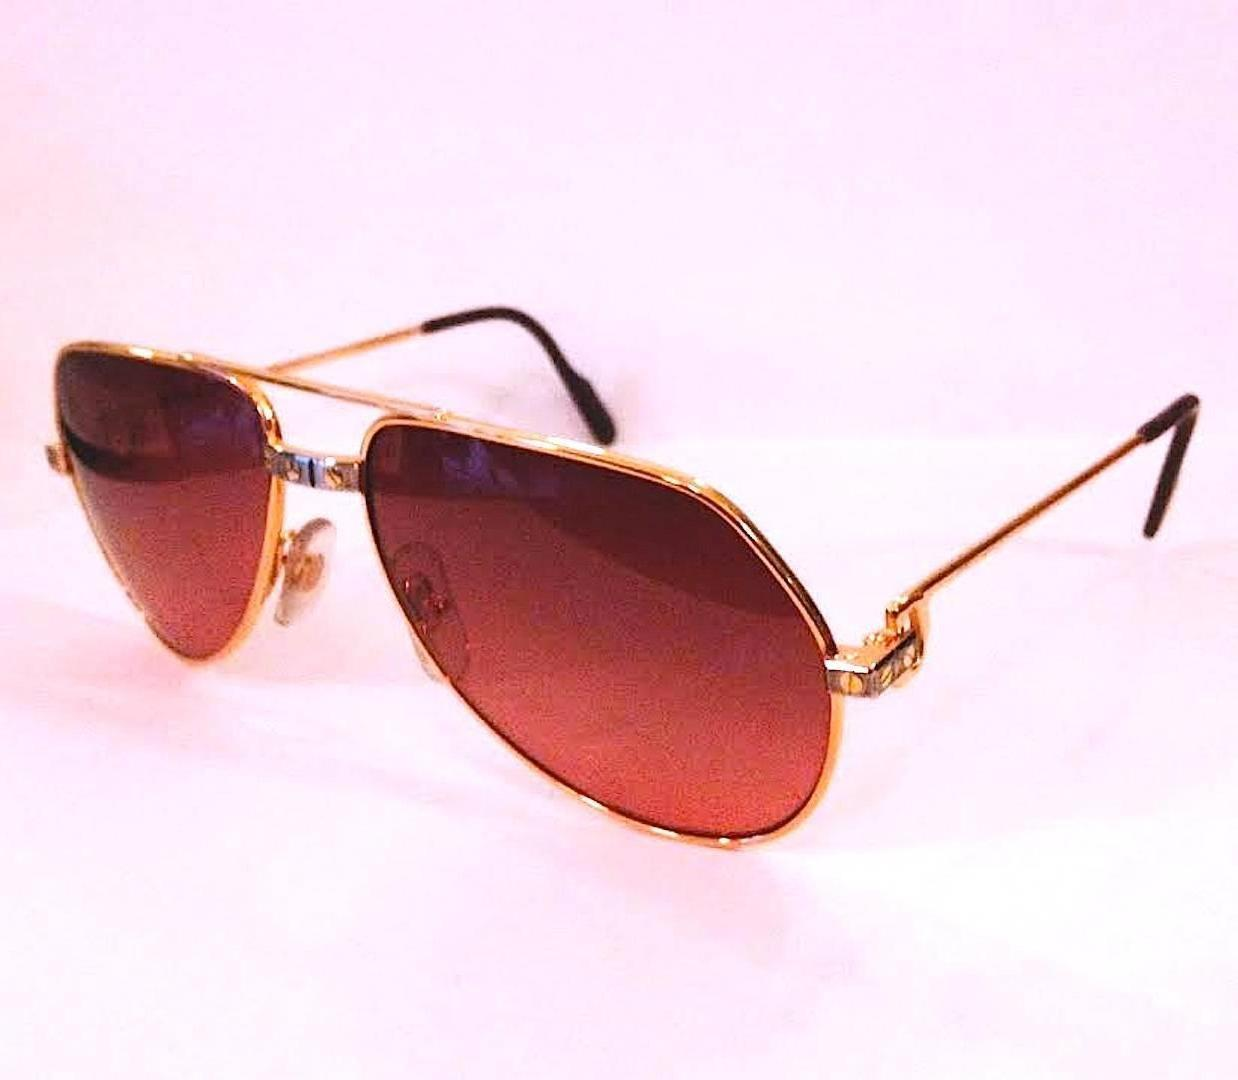 e11501a8c99 Cartier Aviators Sunglasses